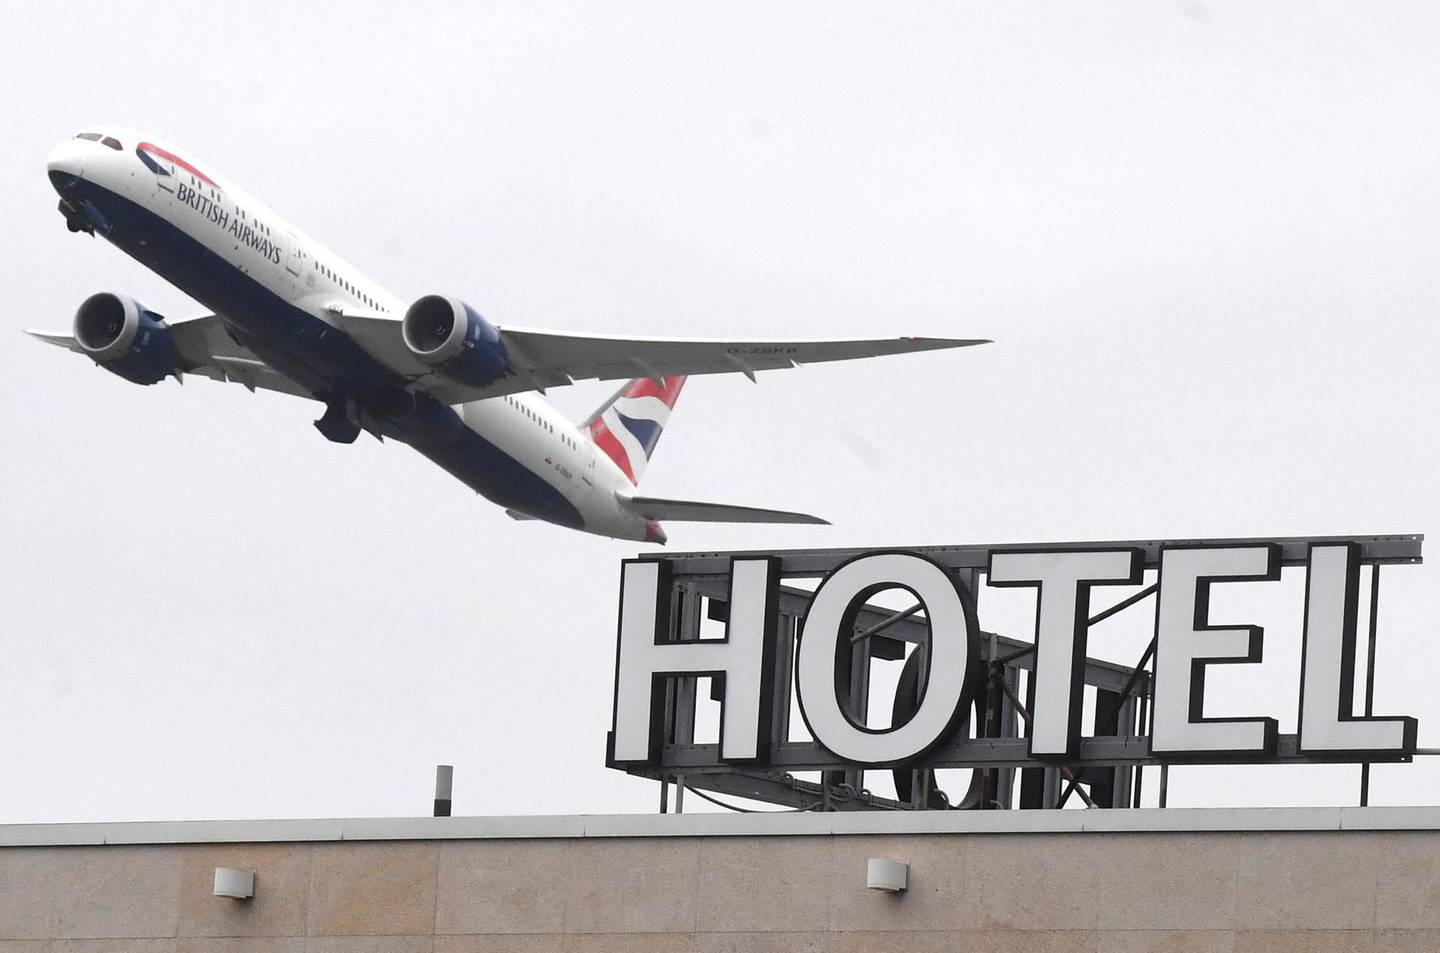 epa08966494 A plane flies over a hotel near Heathrow Airport near London, Britain, 26 January 2021. The British government is expected to approve a plan to require UK citizens to quarantine in a hotel if they arrive in England from high-risk countries.  EPA/NEIL HALL